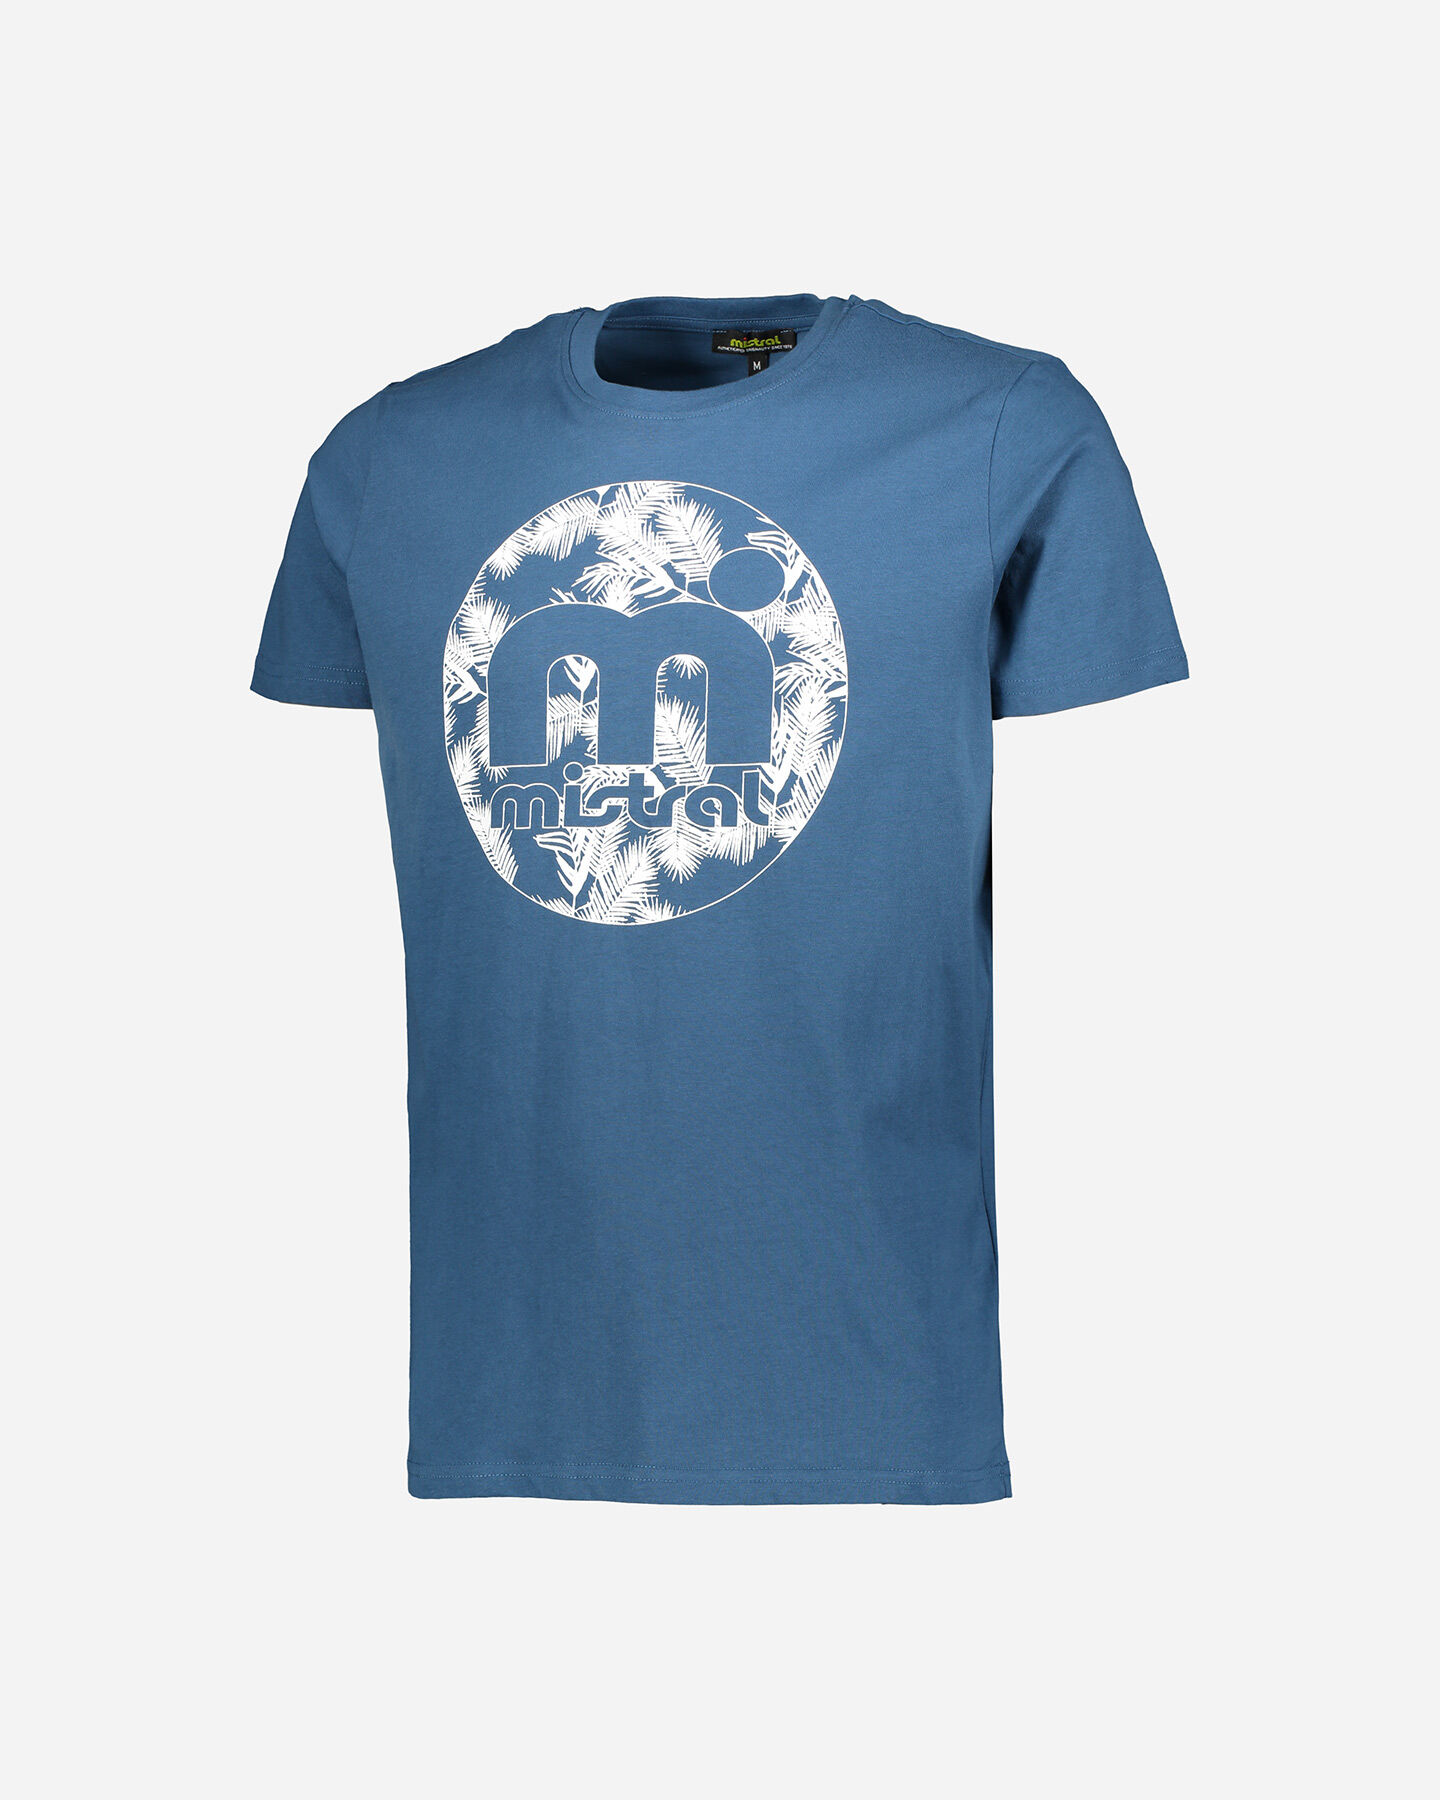 T-Shirt MISTRAL LOGO CENTRAL ST PALM M S4087935 scatto 0